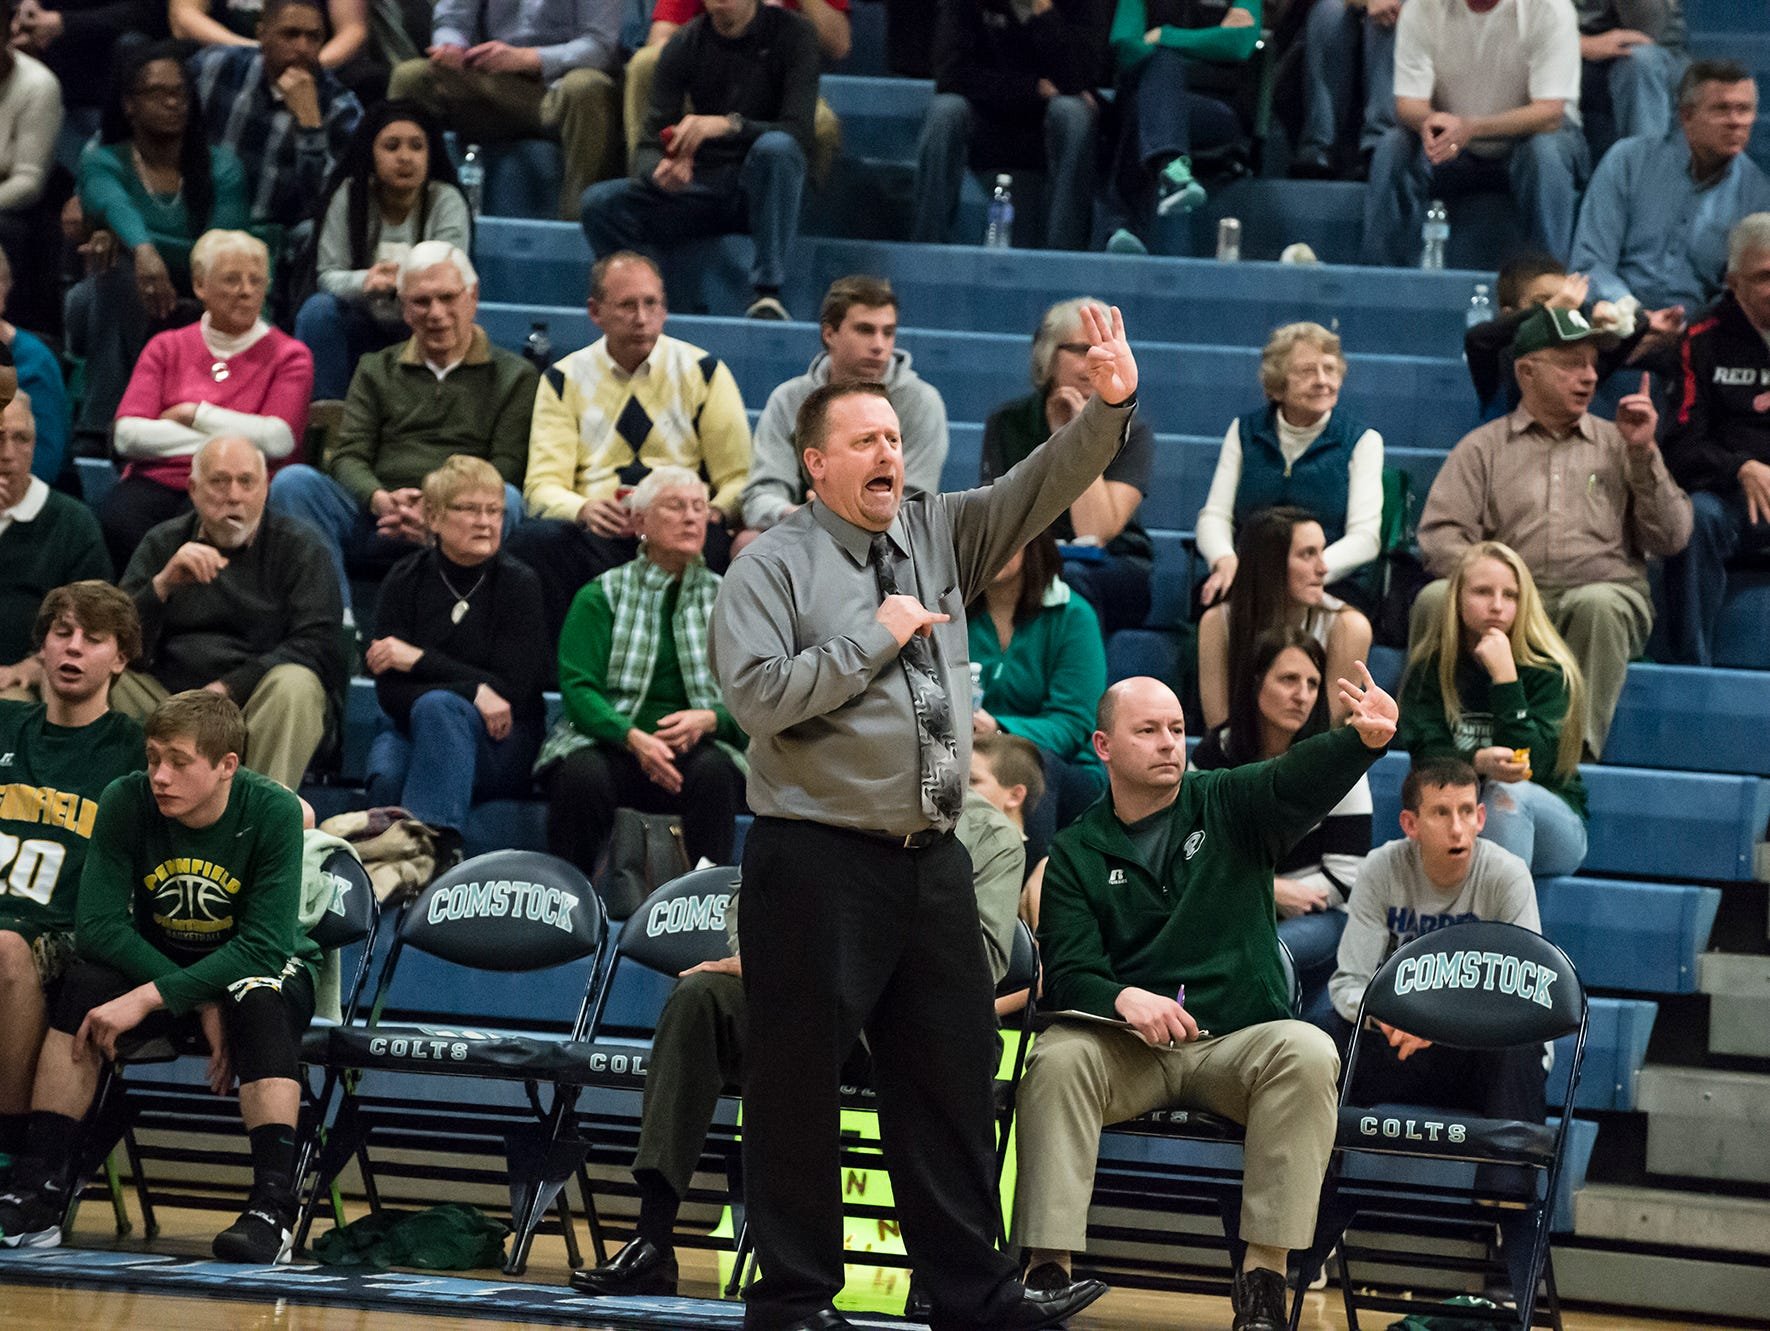 Pennfield's coach Steve Grimes reacts during Monday's district game.